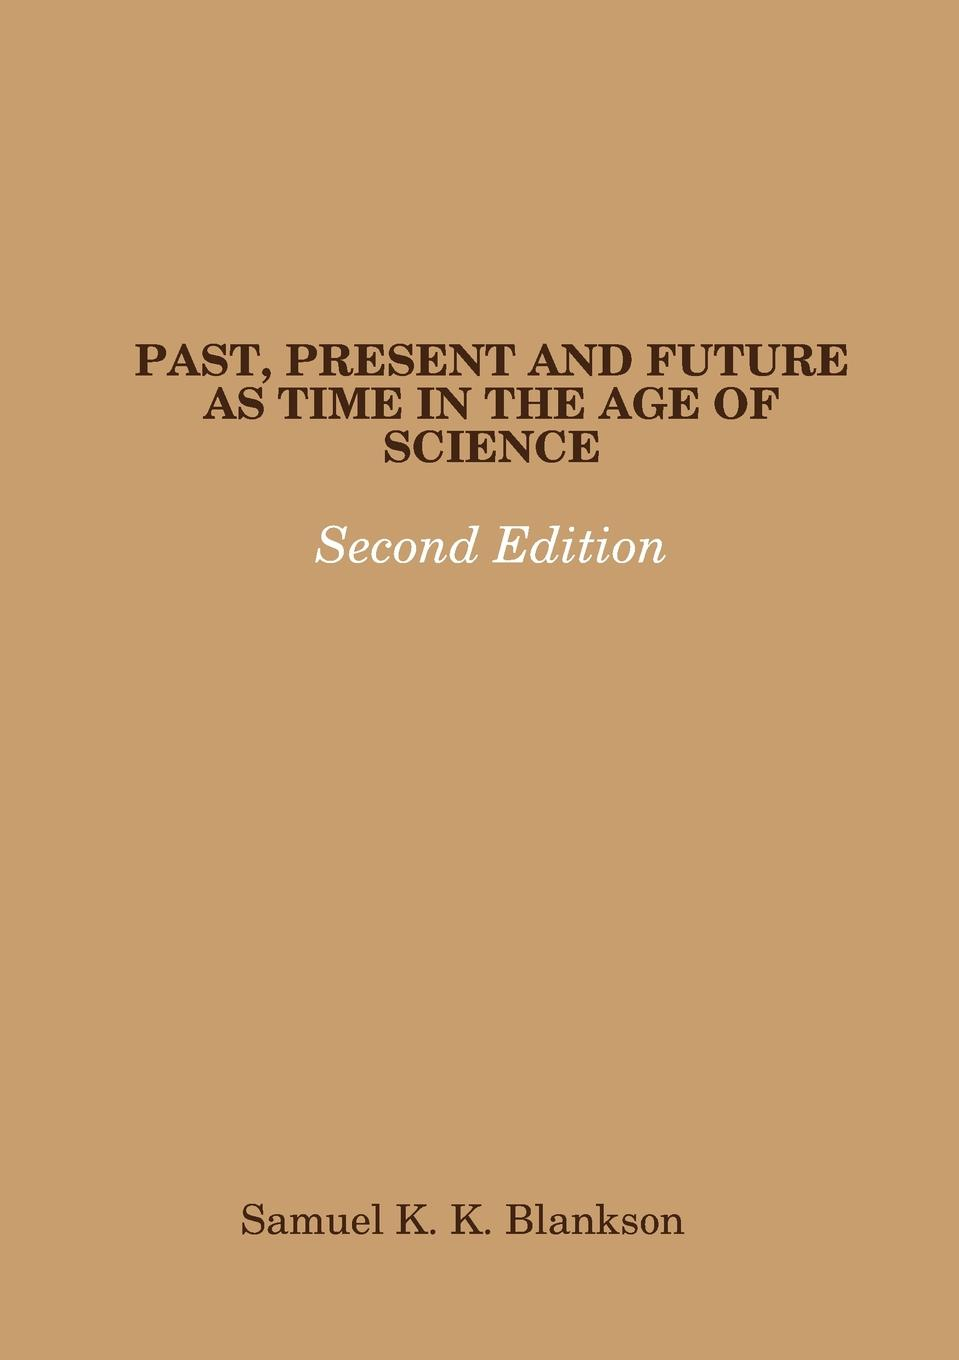 Samuel K. K. Blankson PAST, PRESENT AND FUTURE AS TIME IN THE AGE OF SCIENCE - SECOND EDITION все цены